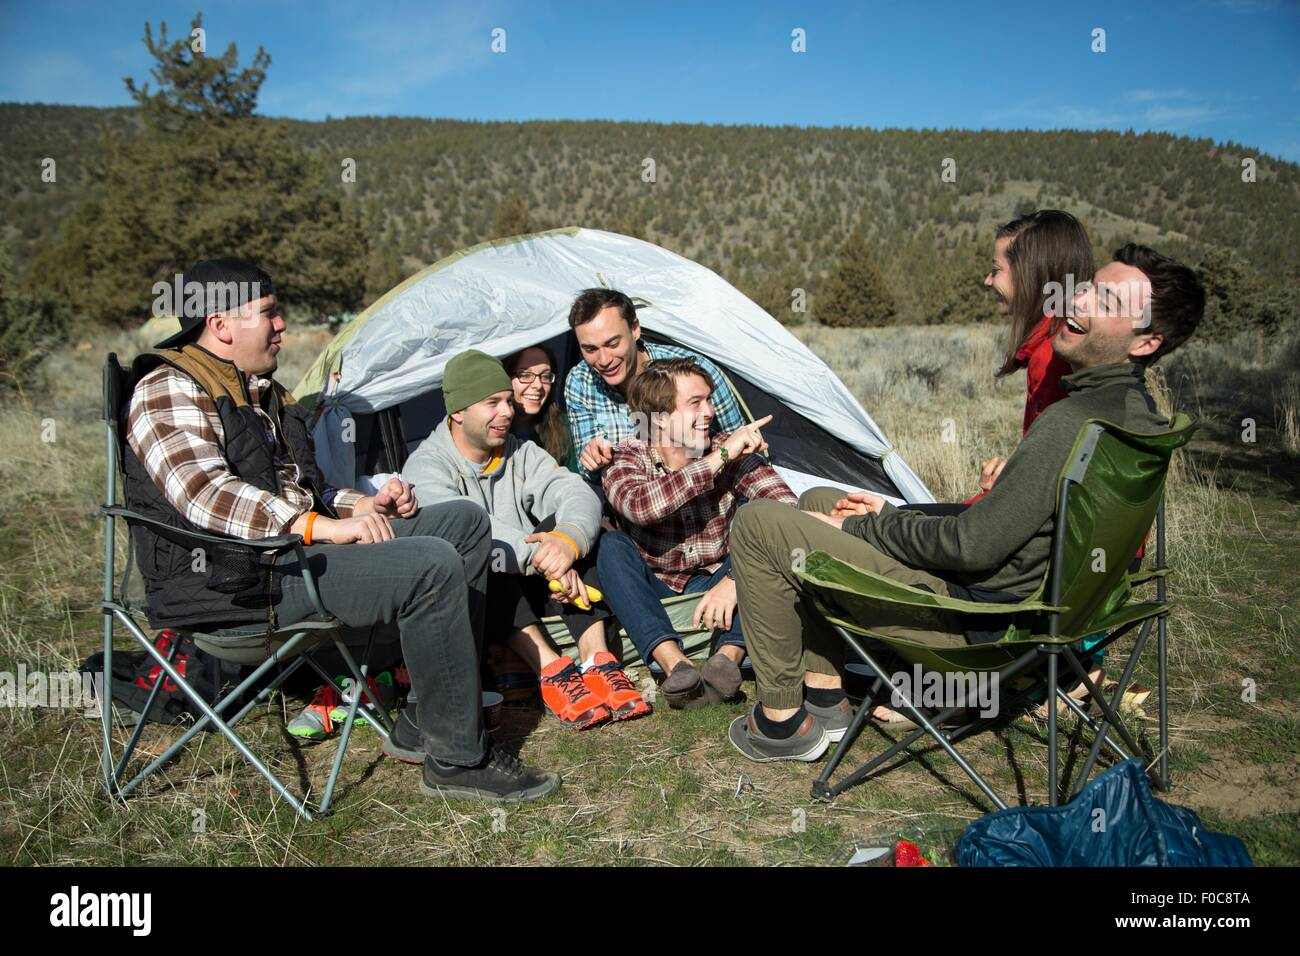 Group of friends at camp, Smith Rock State Park, Oregon - Stock Image